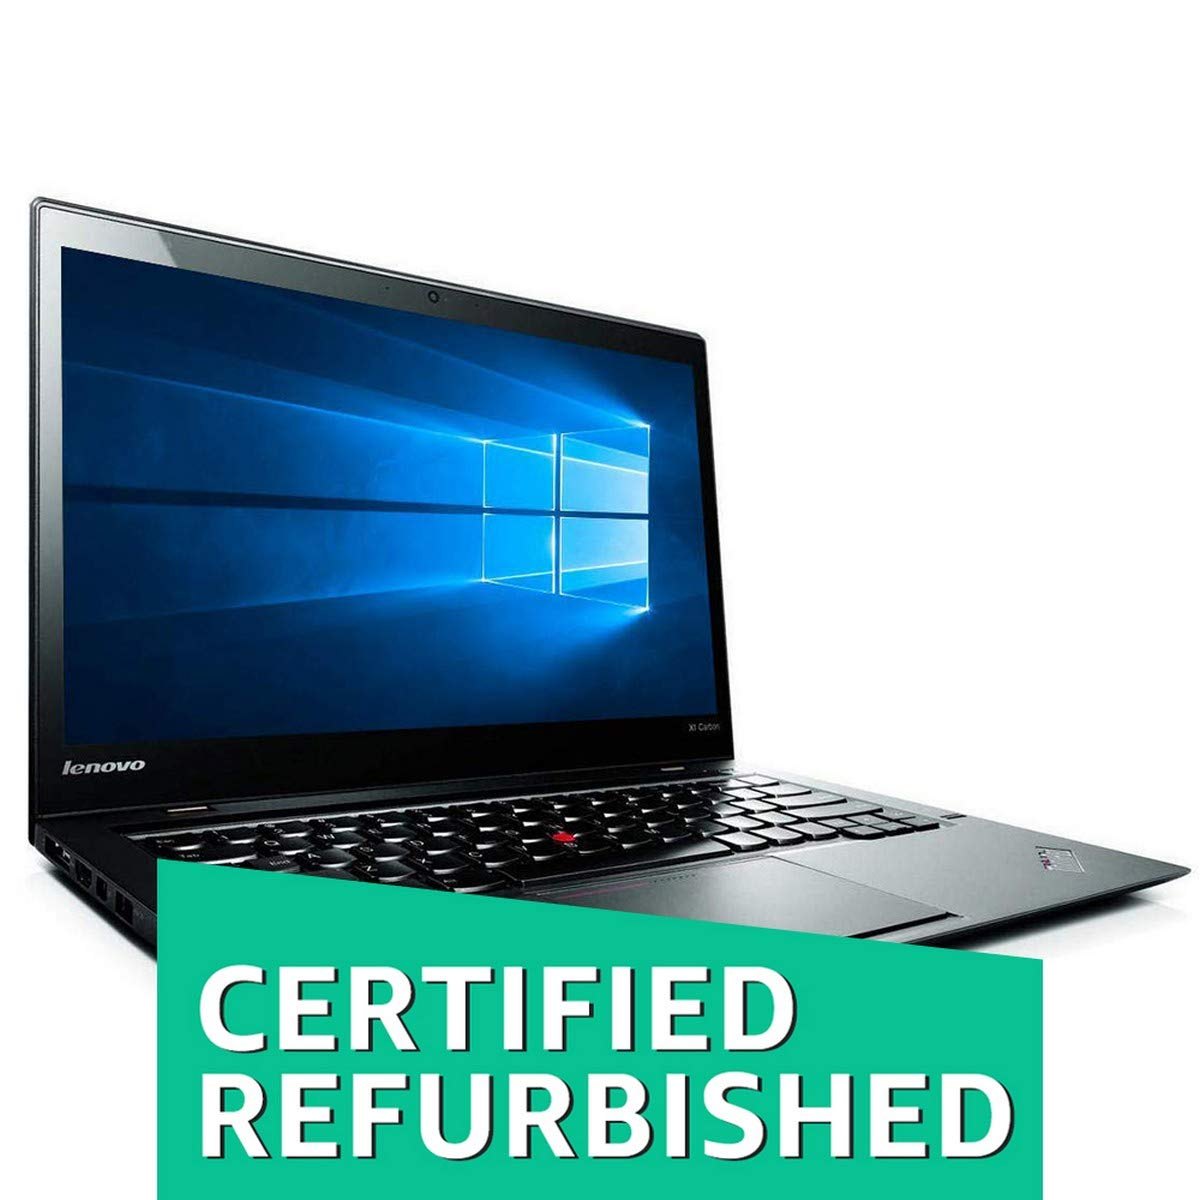 (Certified REFURBISHED) Lenovo ThinkPad X1 Carbon 14-inch